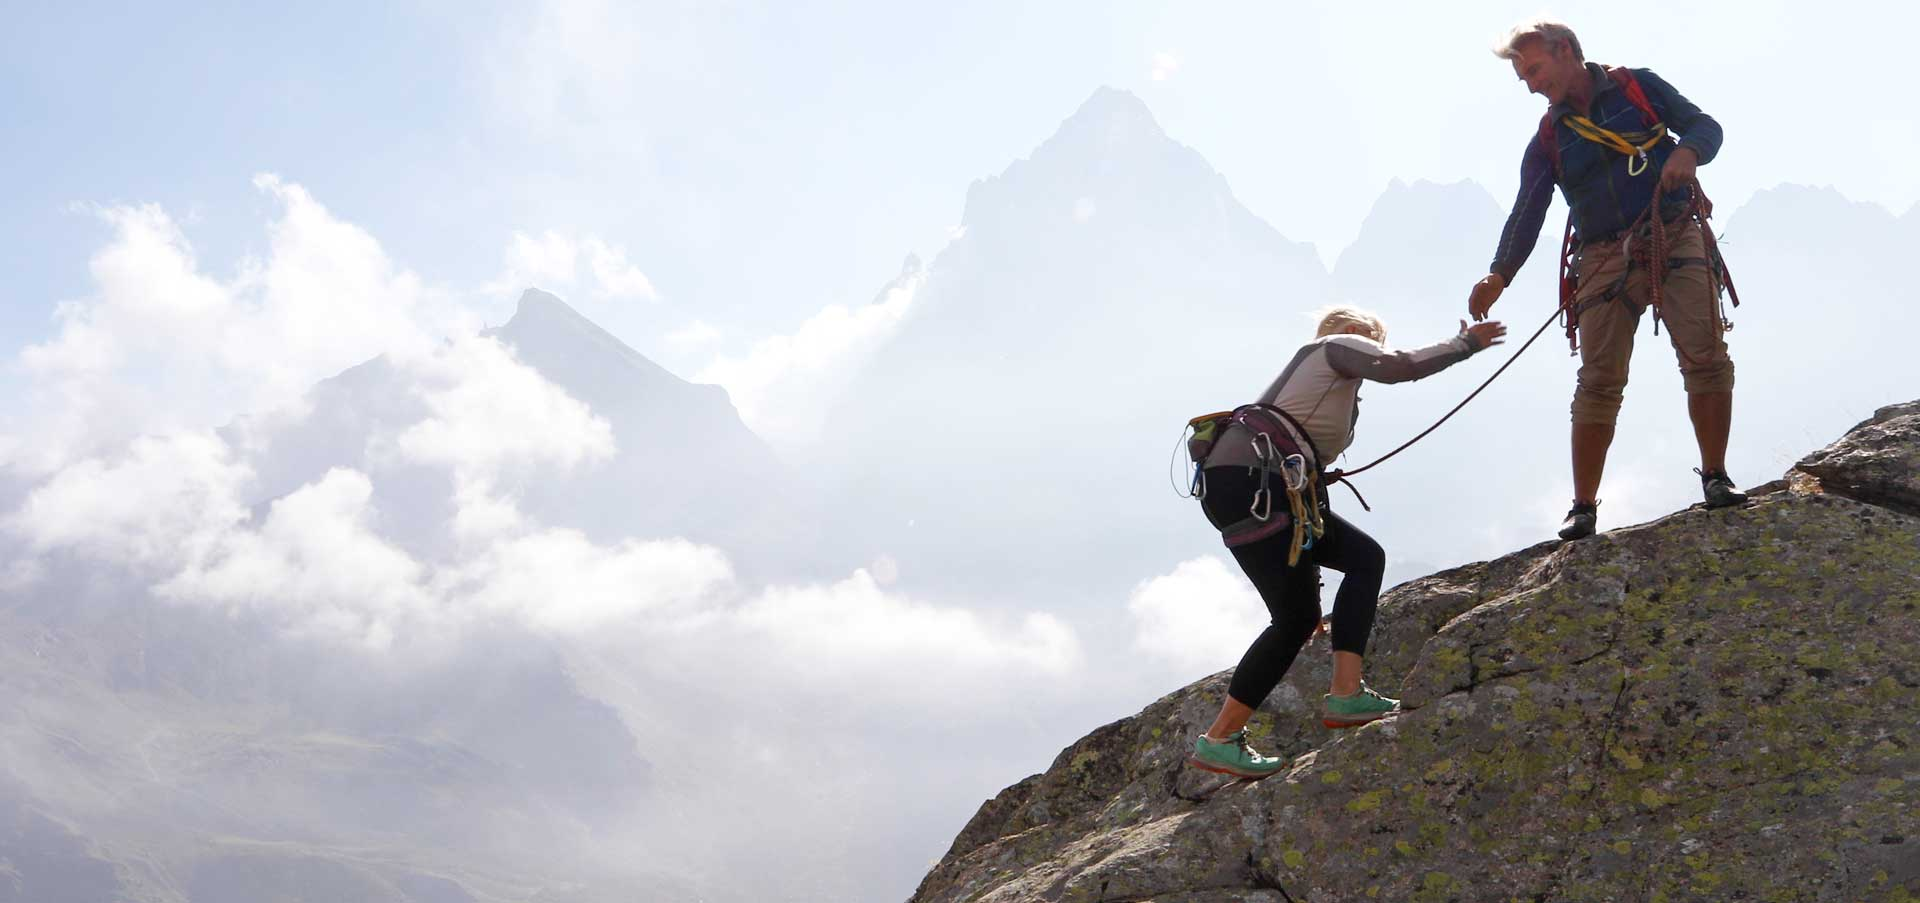 A man and a Women climbing a mountain with ropes.